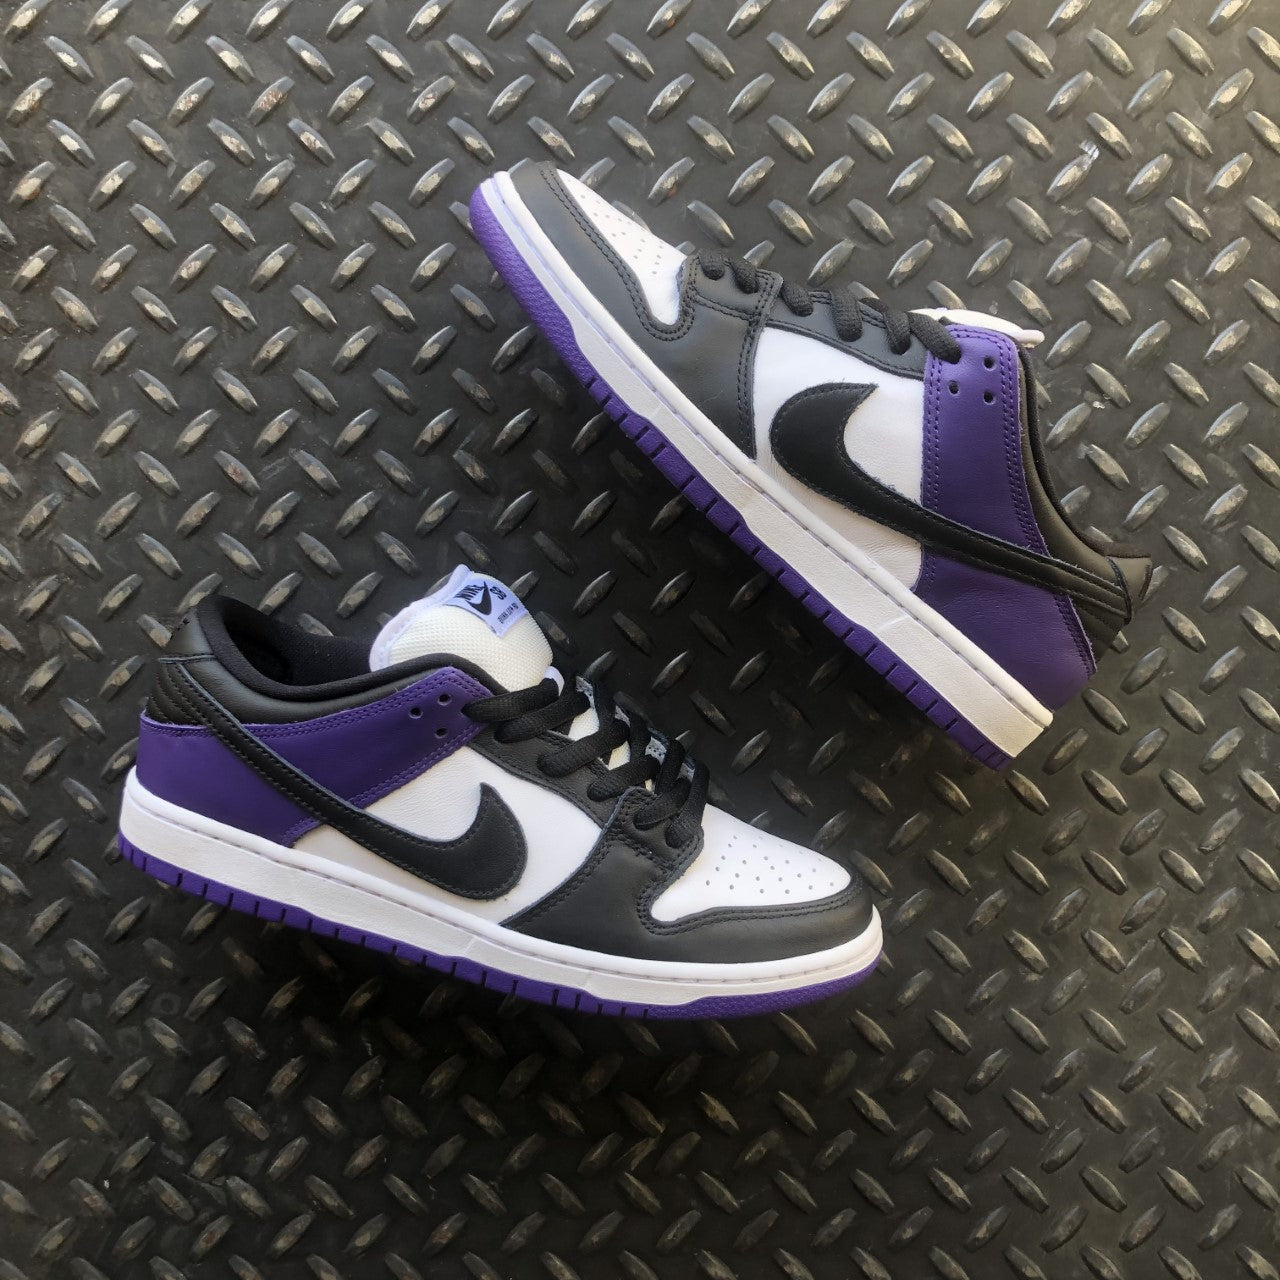 Nike SB Court Purple Dunk Low Raffle